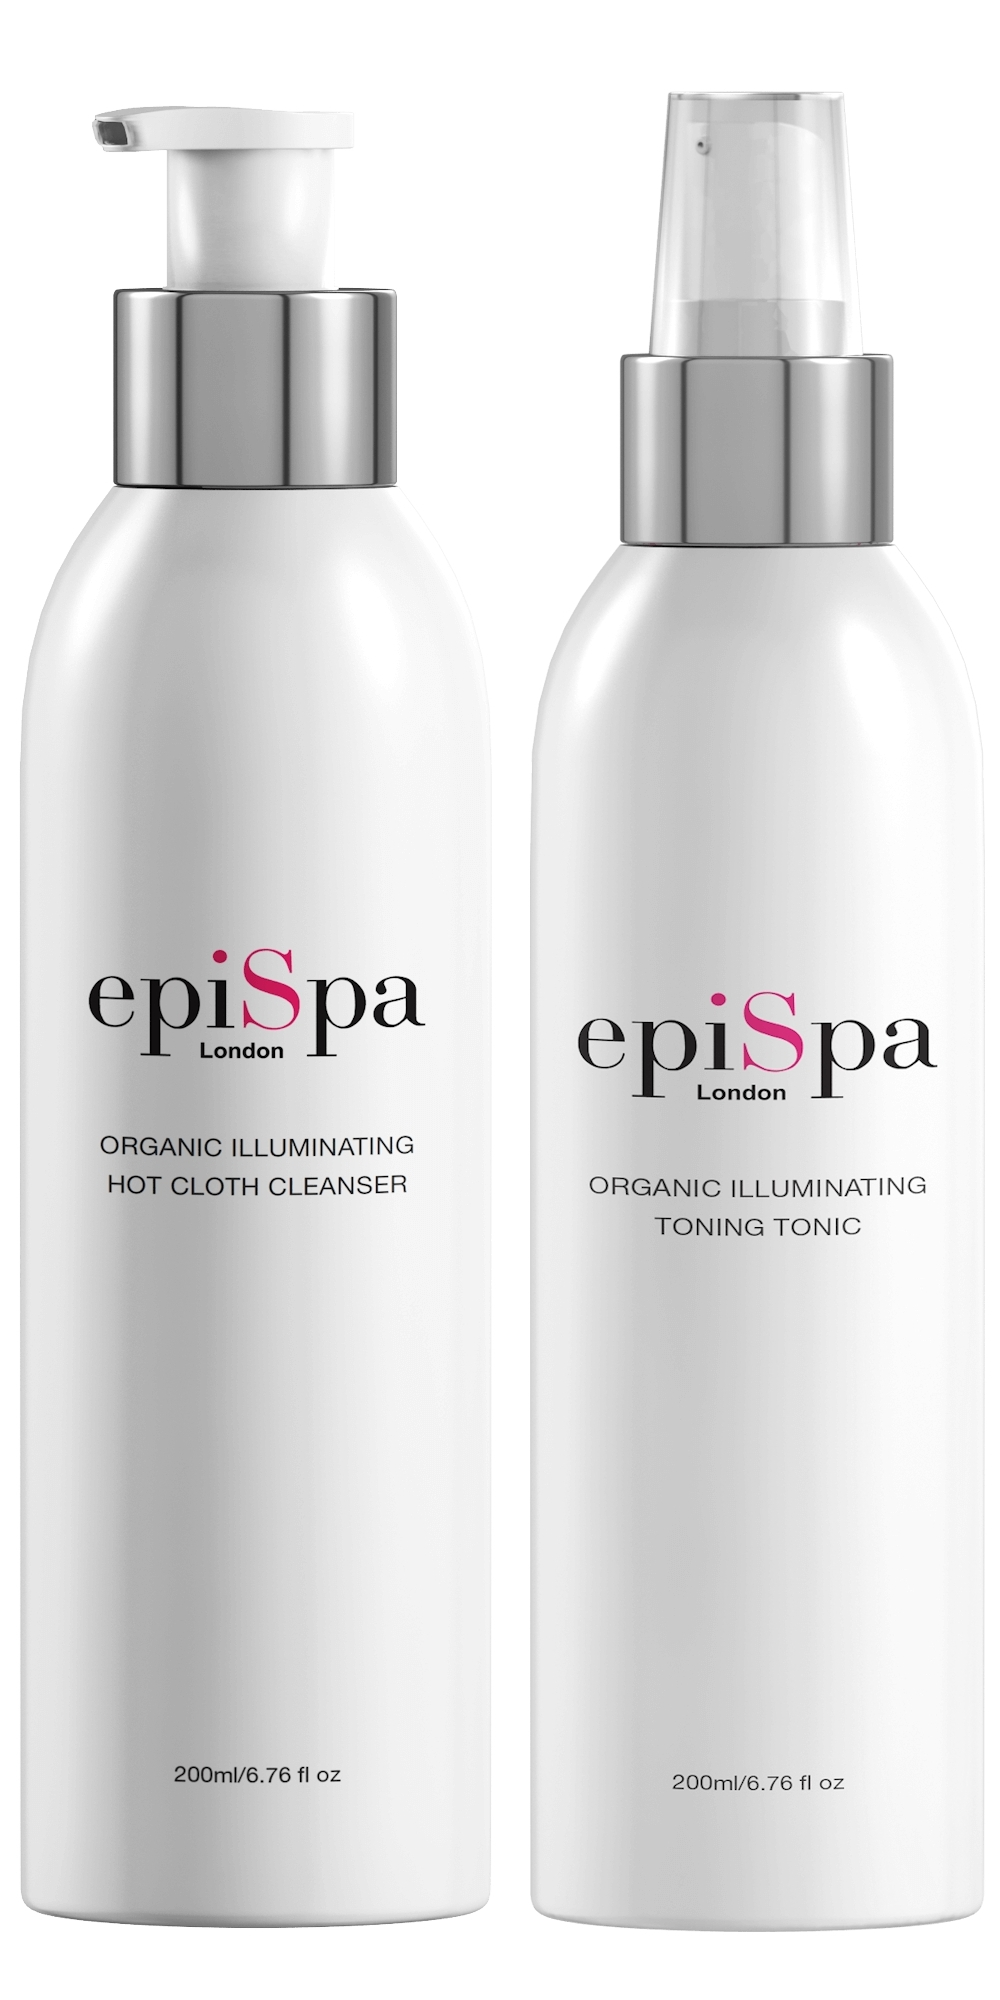 Organic Illuminating Hot Cloth Cleanser & Toning Tonic Duo